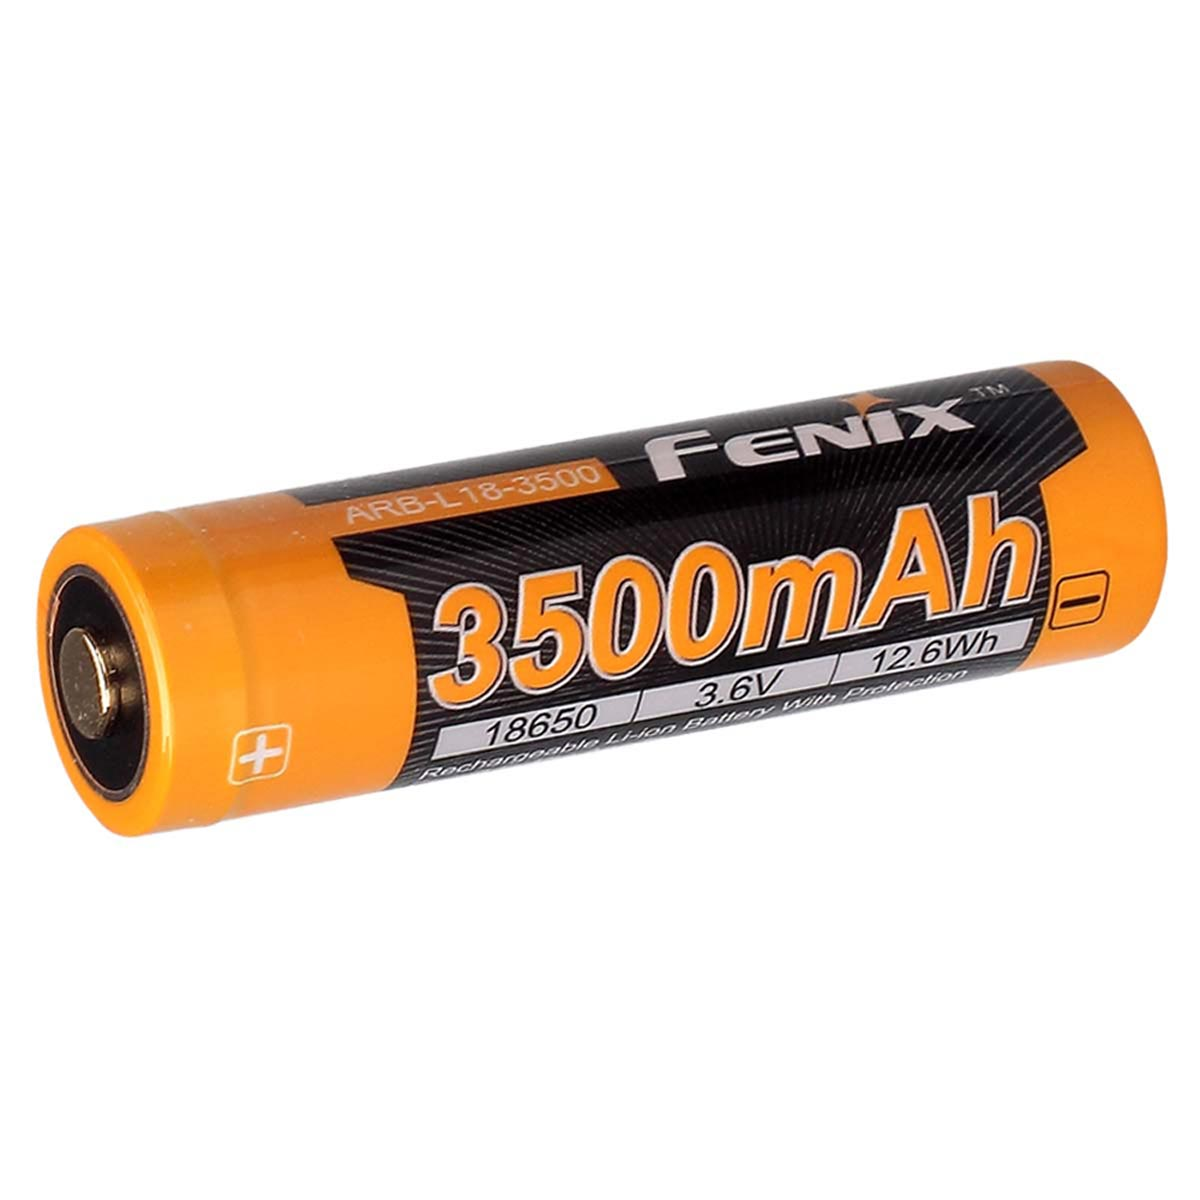 Fenix 18650 Li-ion 3500mAh Rechargeable Battery with Built-In USB Charging Port